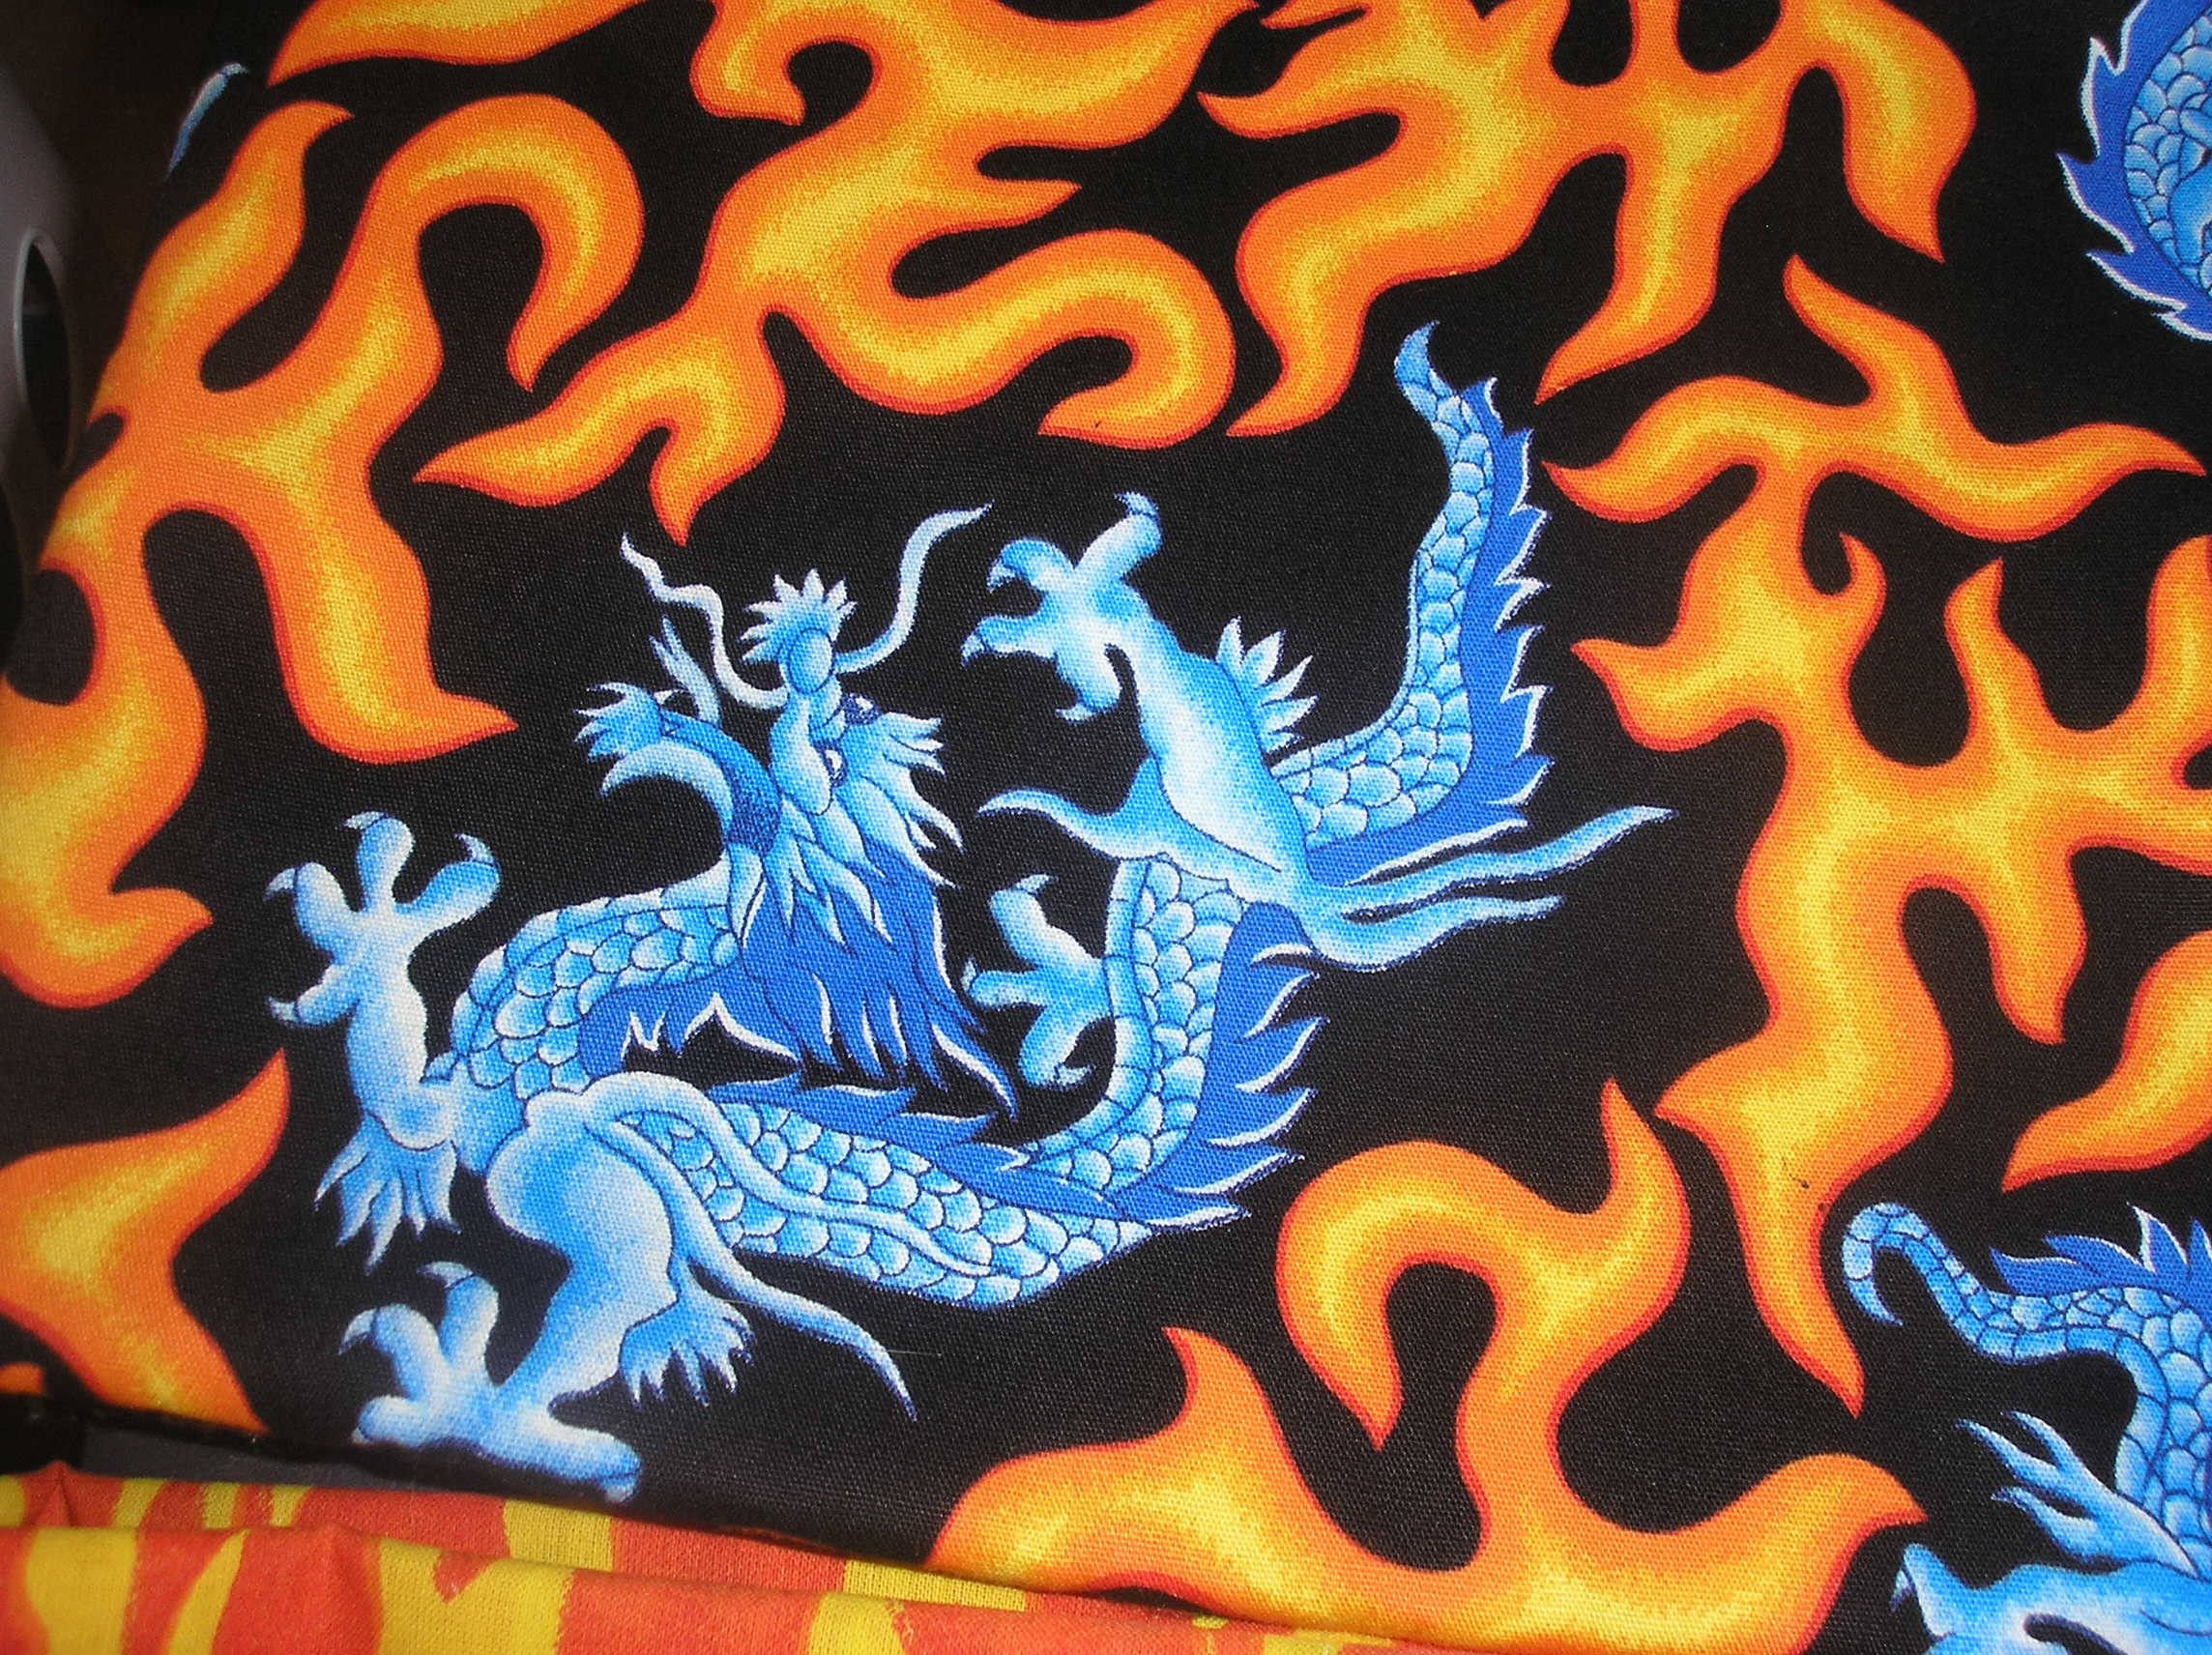 dragons with flames